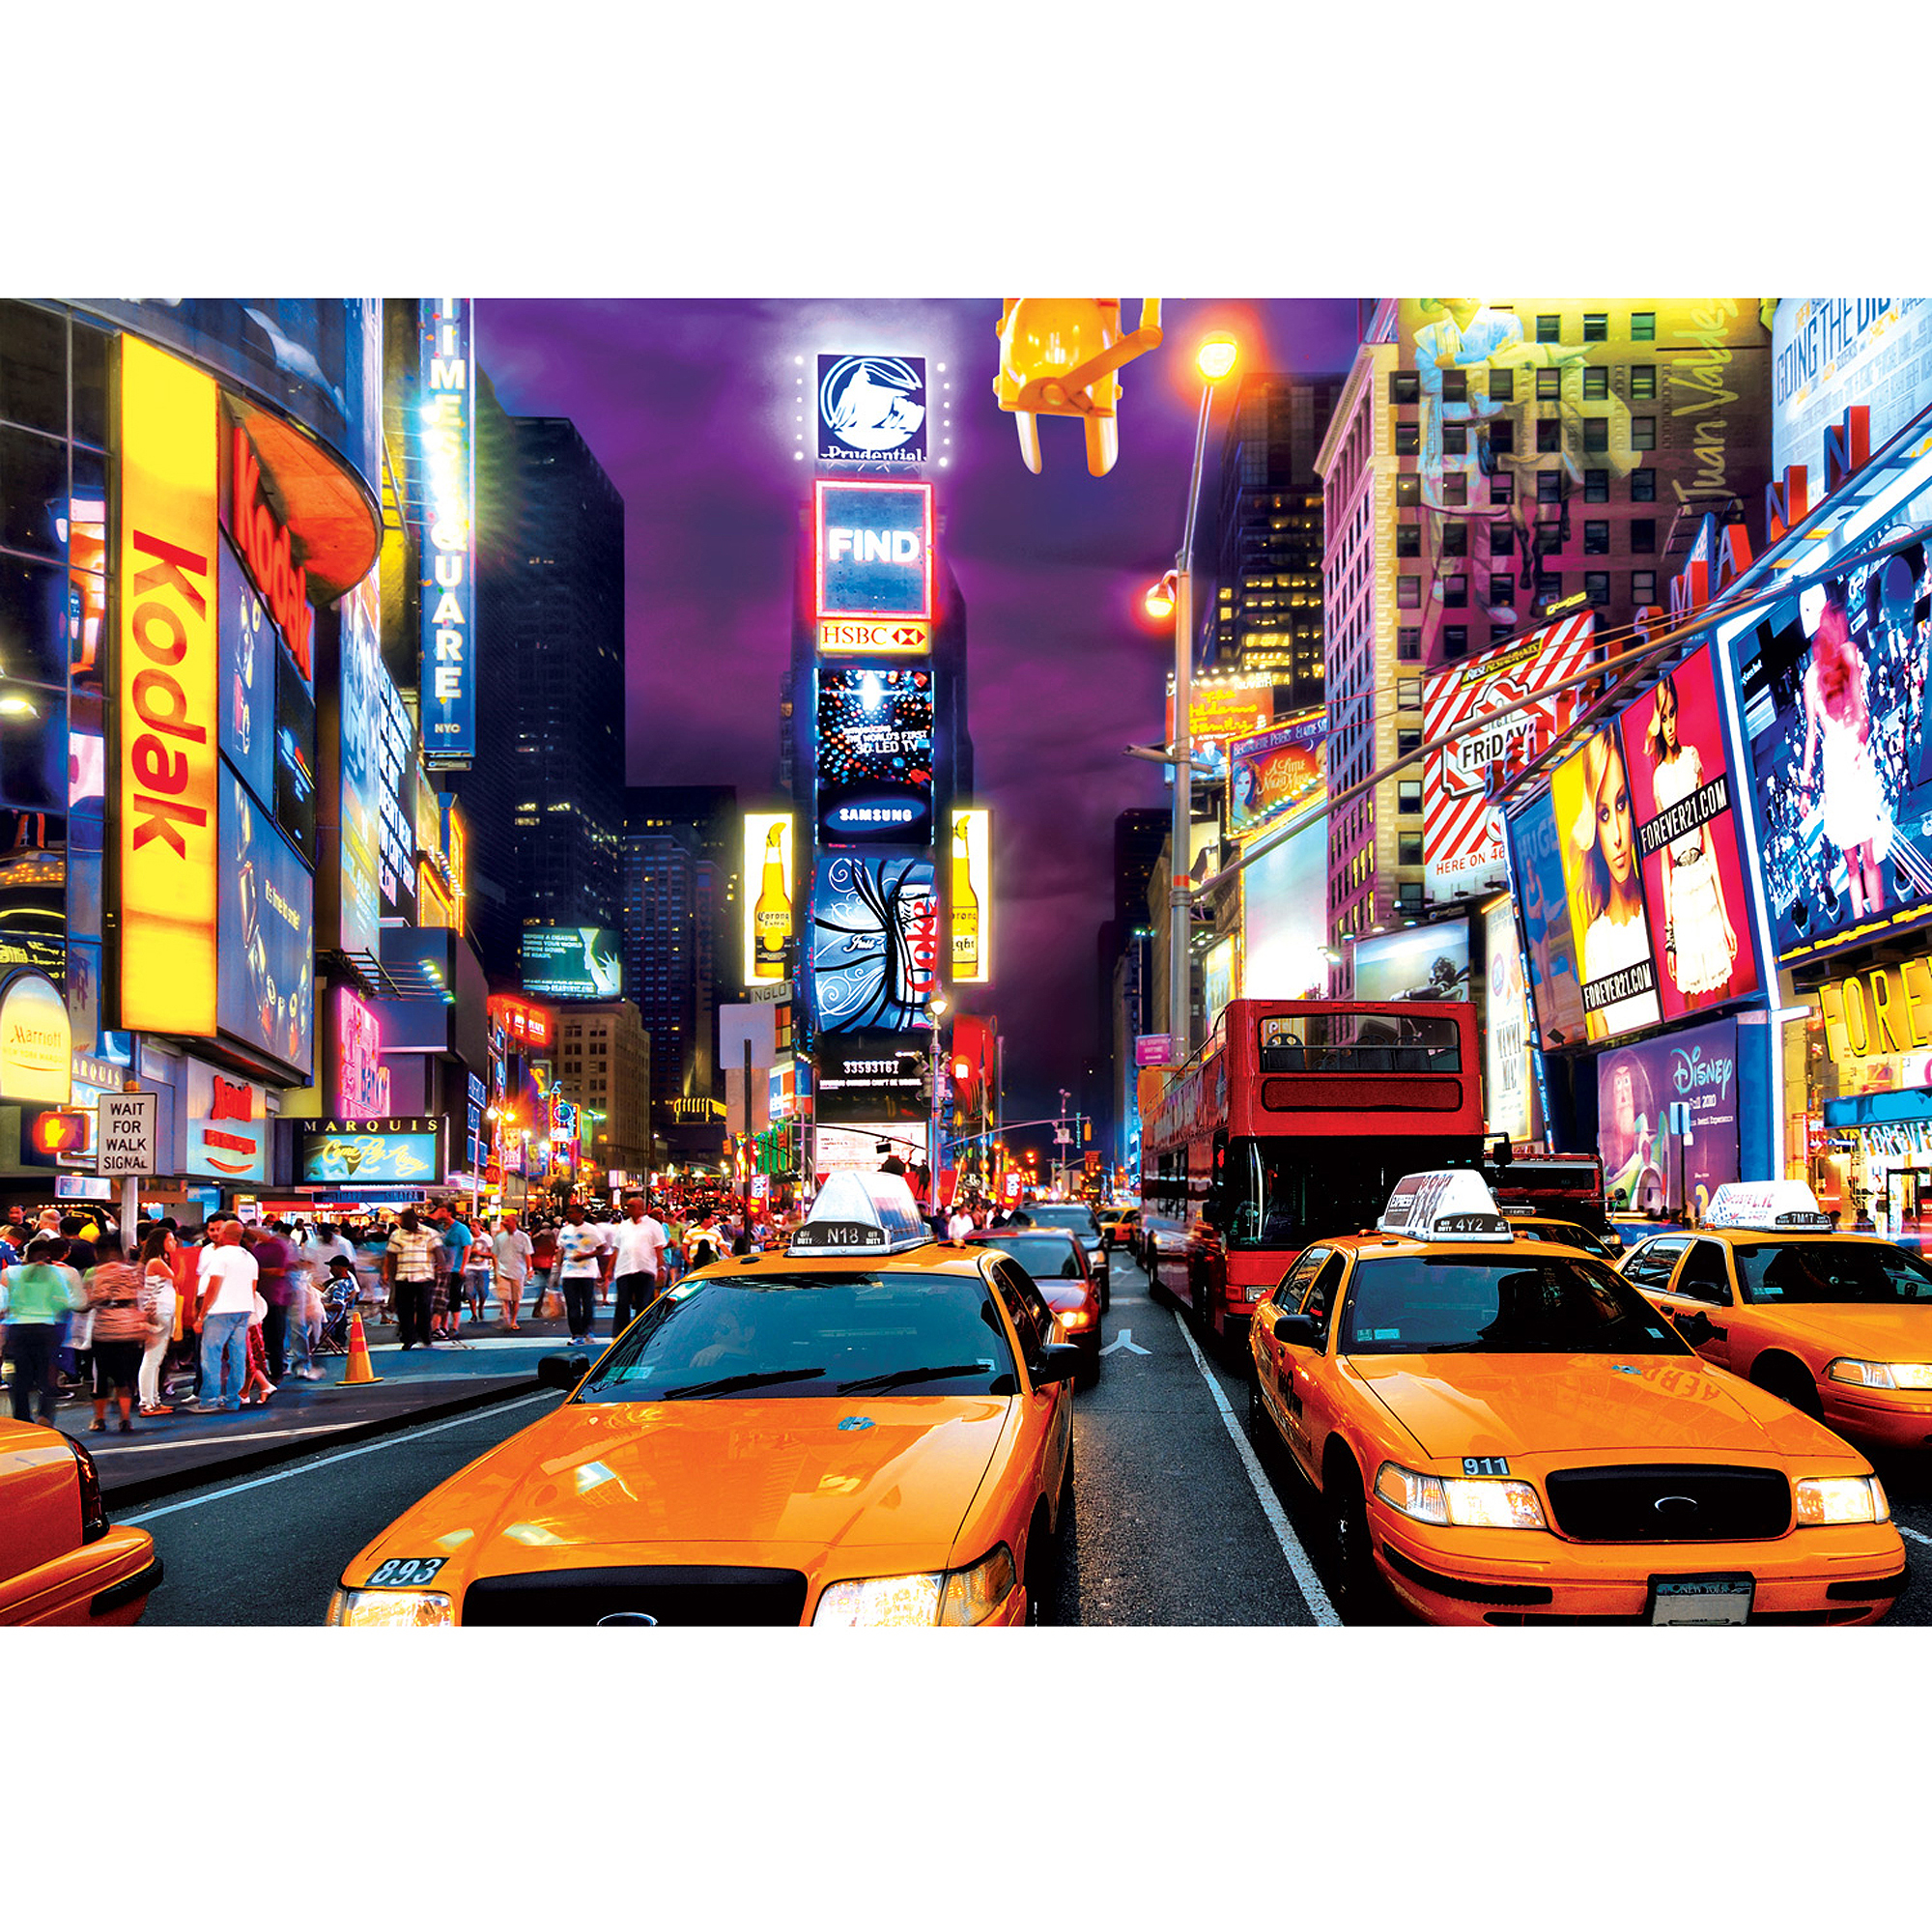 Buffalo Games Large Pieces Times Square Jigsaw Puzzle, 1,000 Pieces